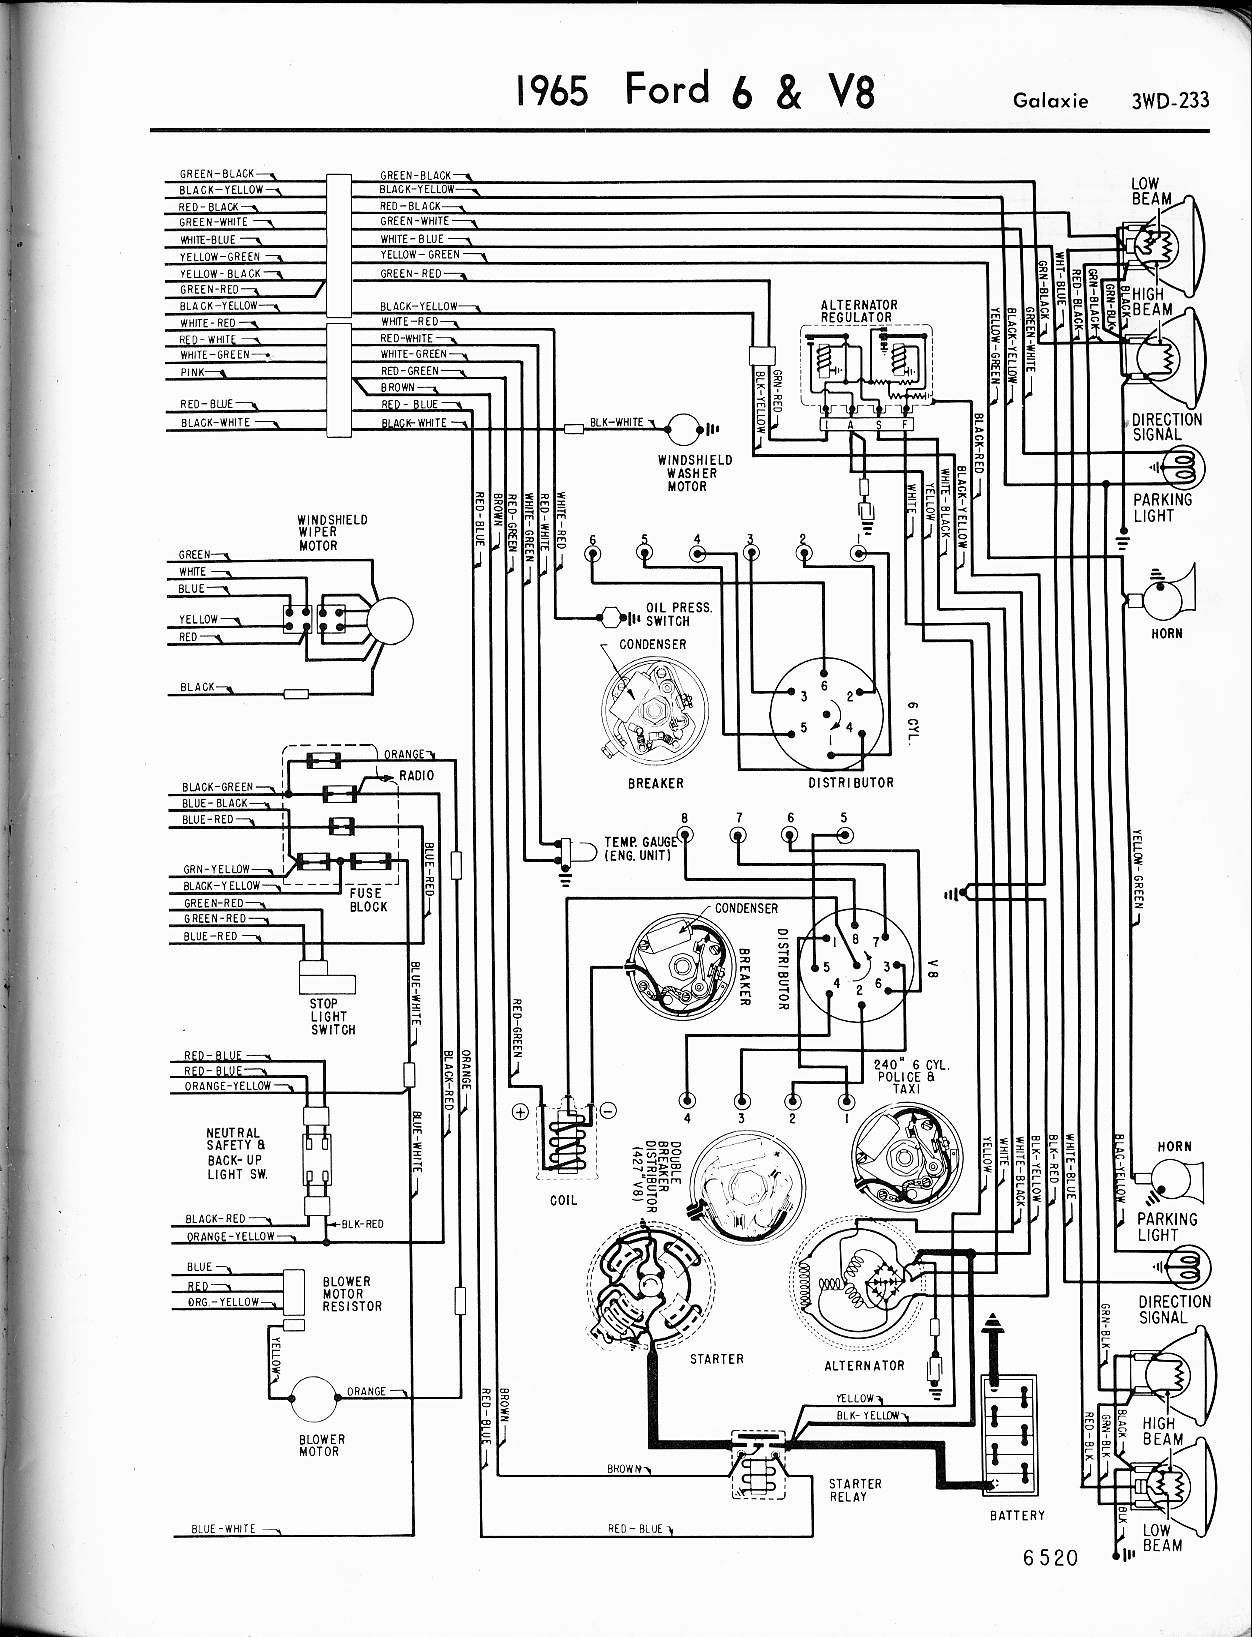 Ford 4 6 V8 Engine Diagram 1965 ford Wiring Diagram Wiring Diagrams Of Ford 4  6